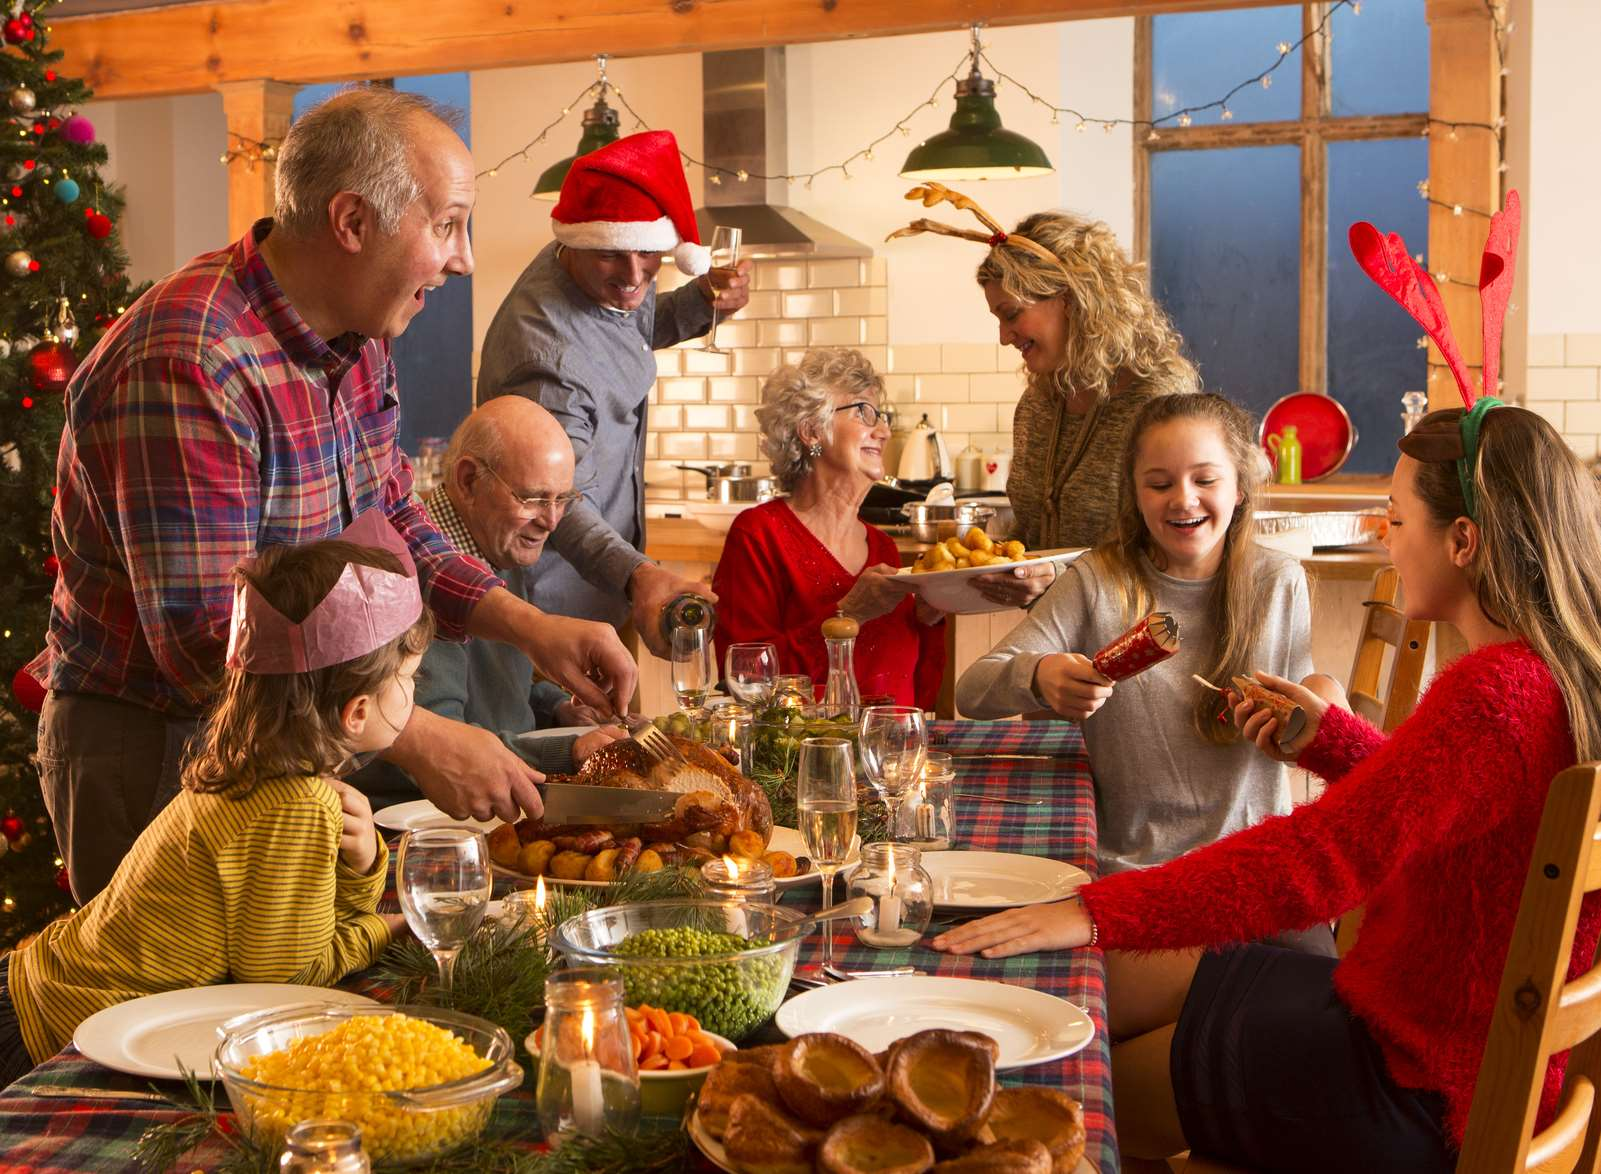 Would you ask for money from your guests for Christmas dinner?